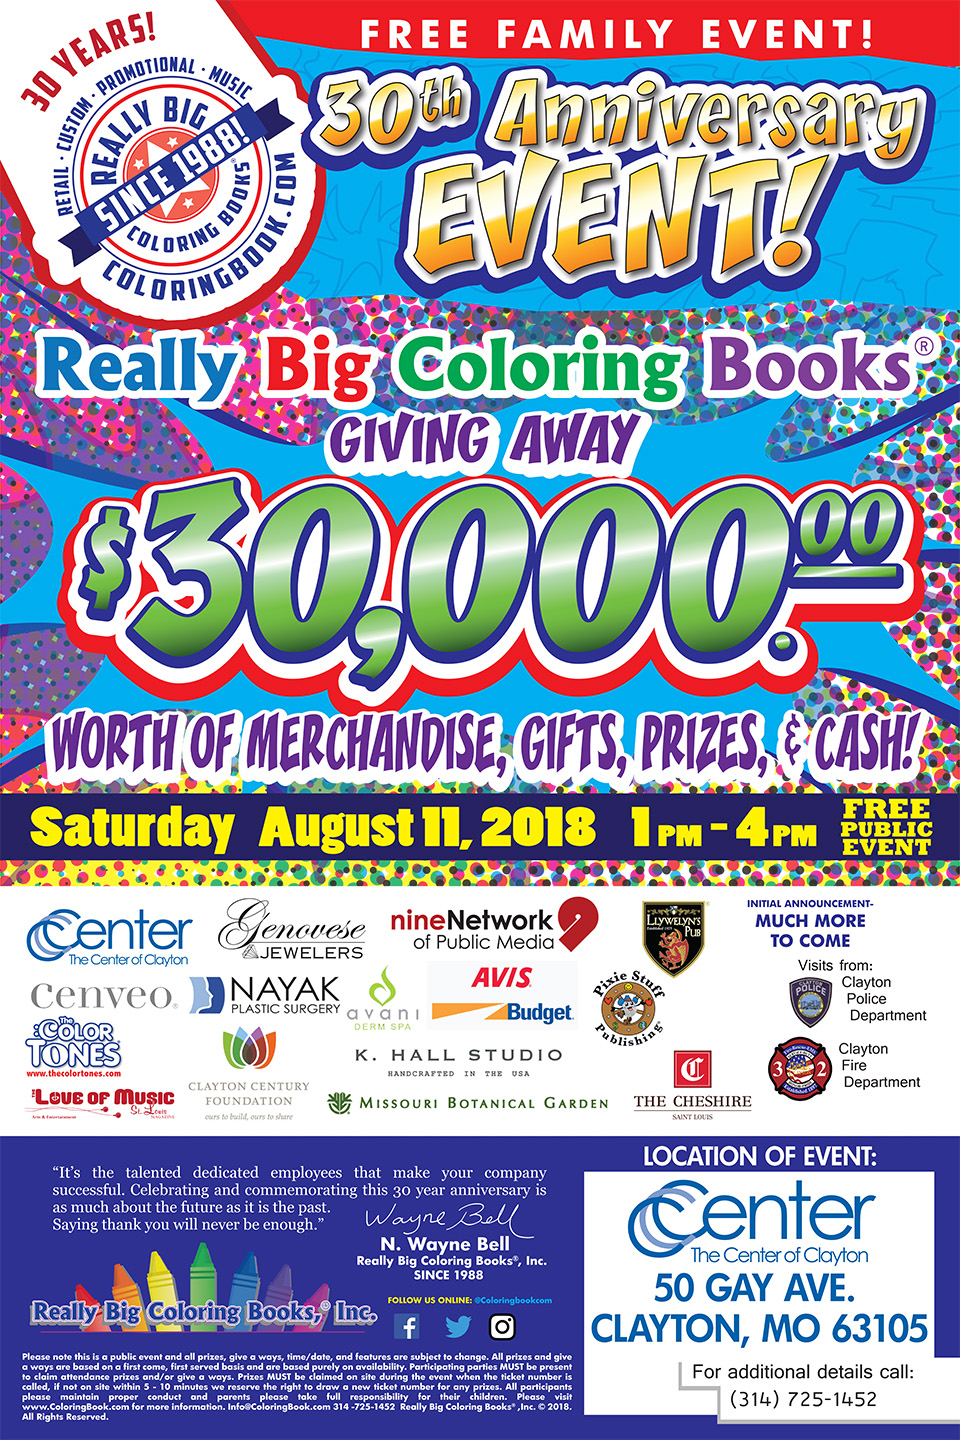 Really Big Coloring Books 30th Anniversary Event - Featuring The ...